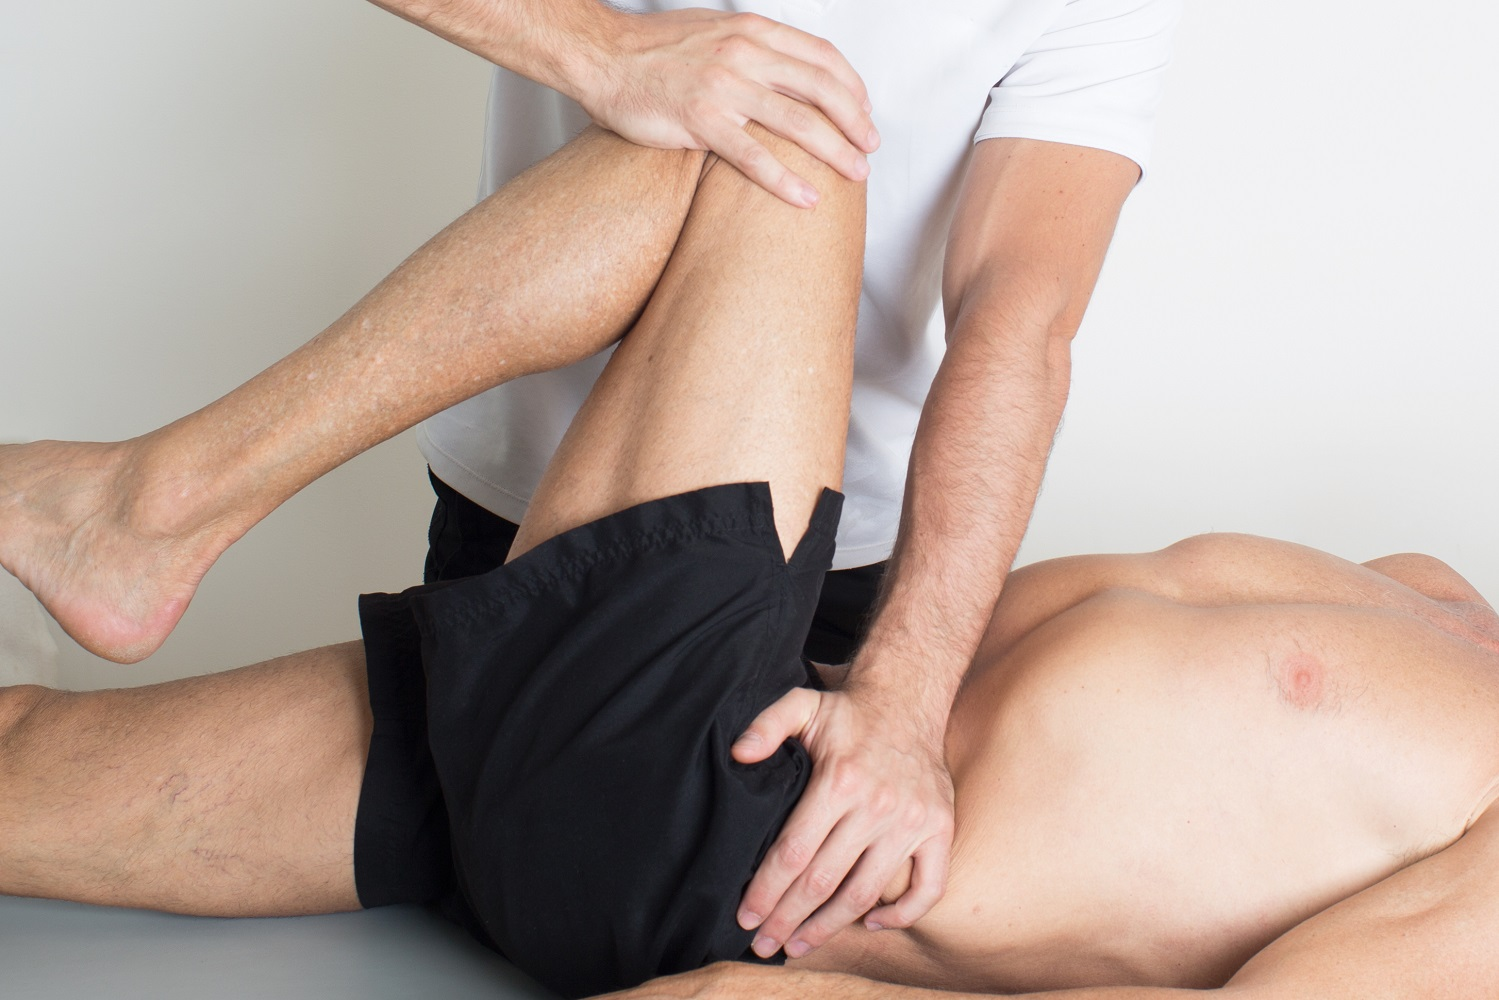 Introduction to Rolfing: What is Rolfing Technique?